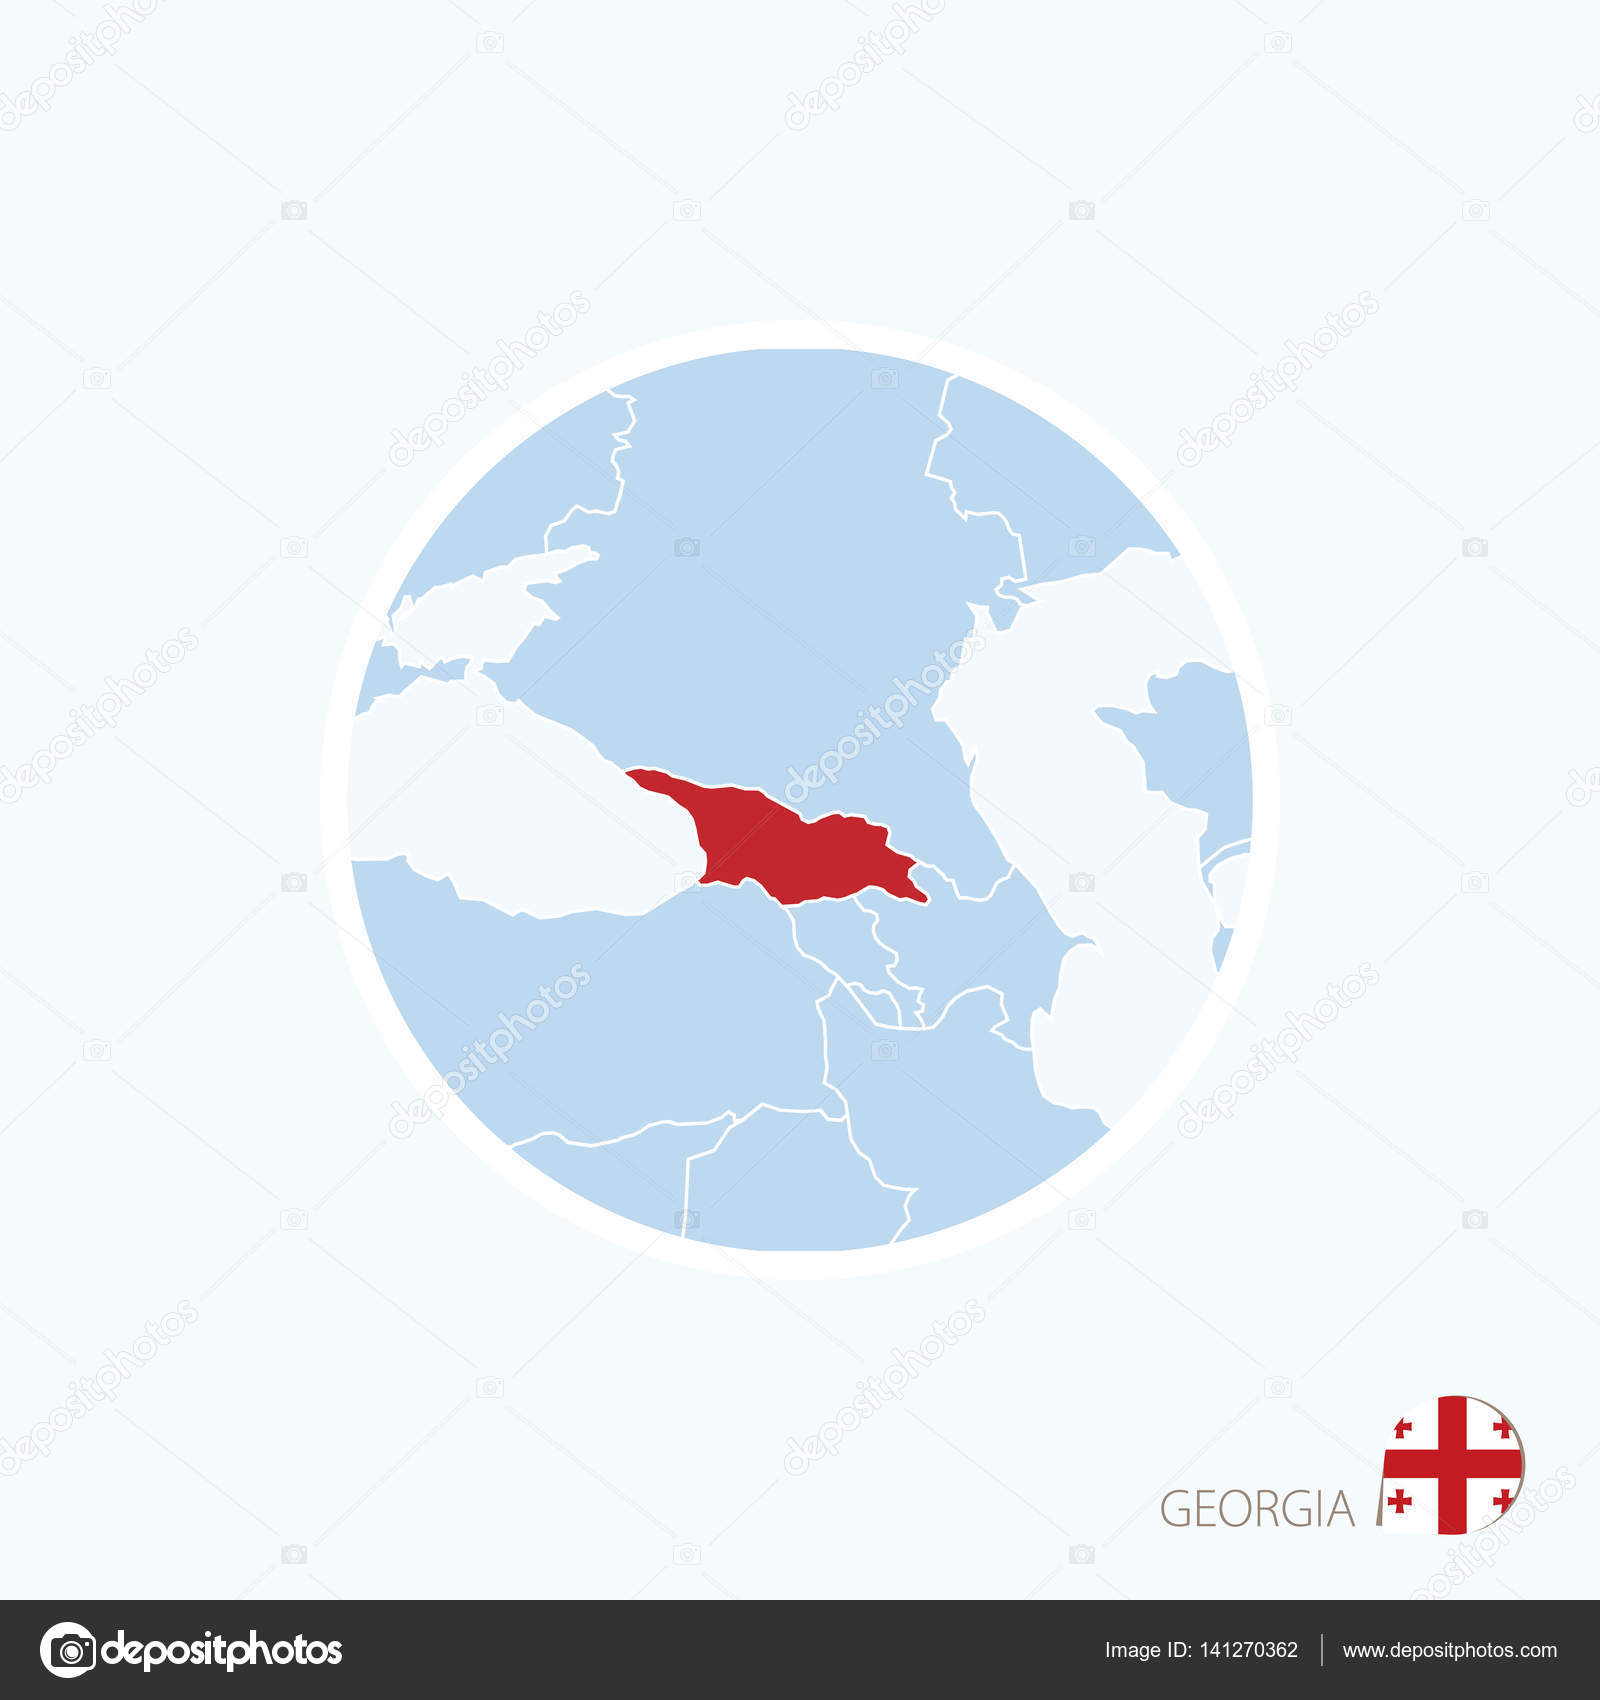 Map Of Europe Georgia.Map Icon Of Georgia Blue Map Of Europe With Highlighted Georgia